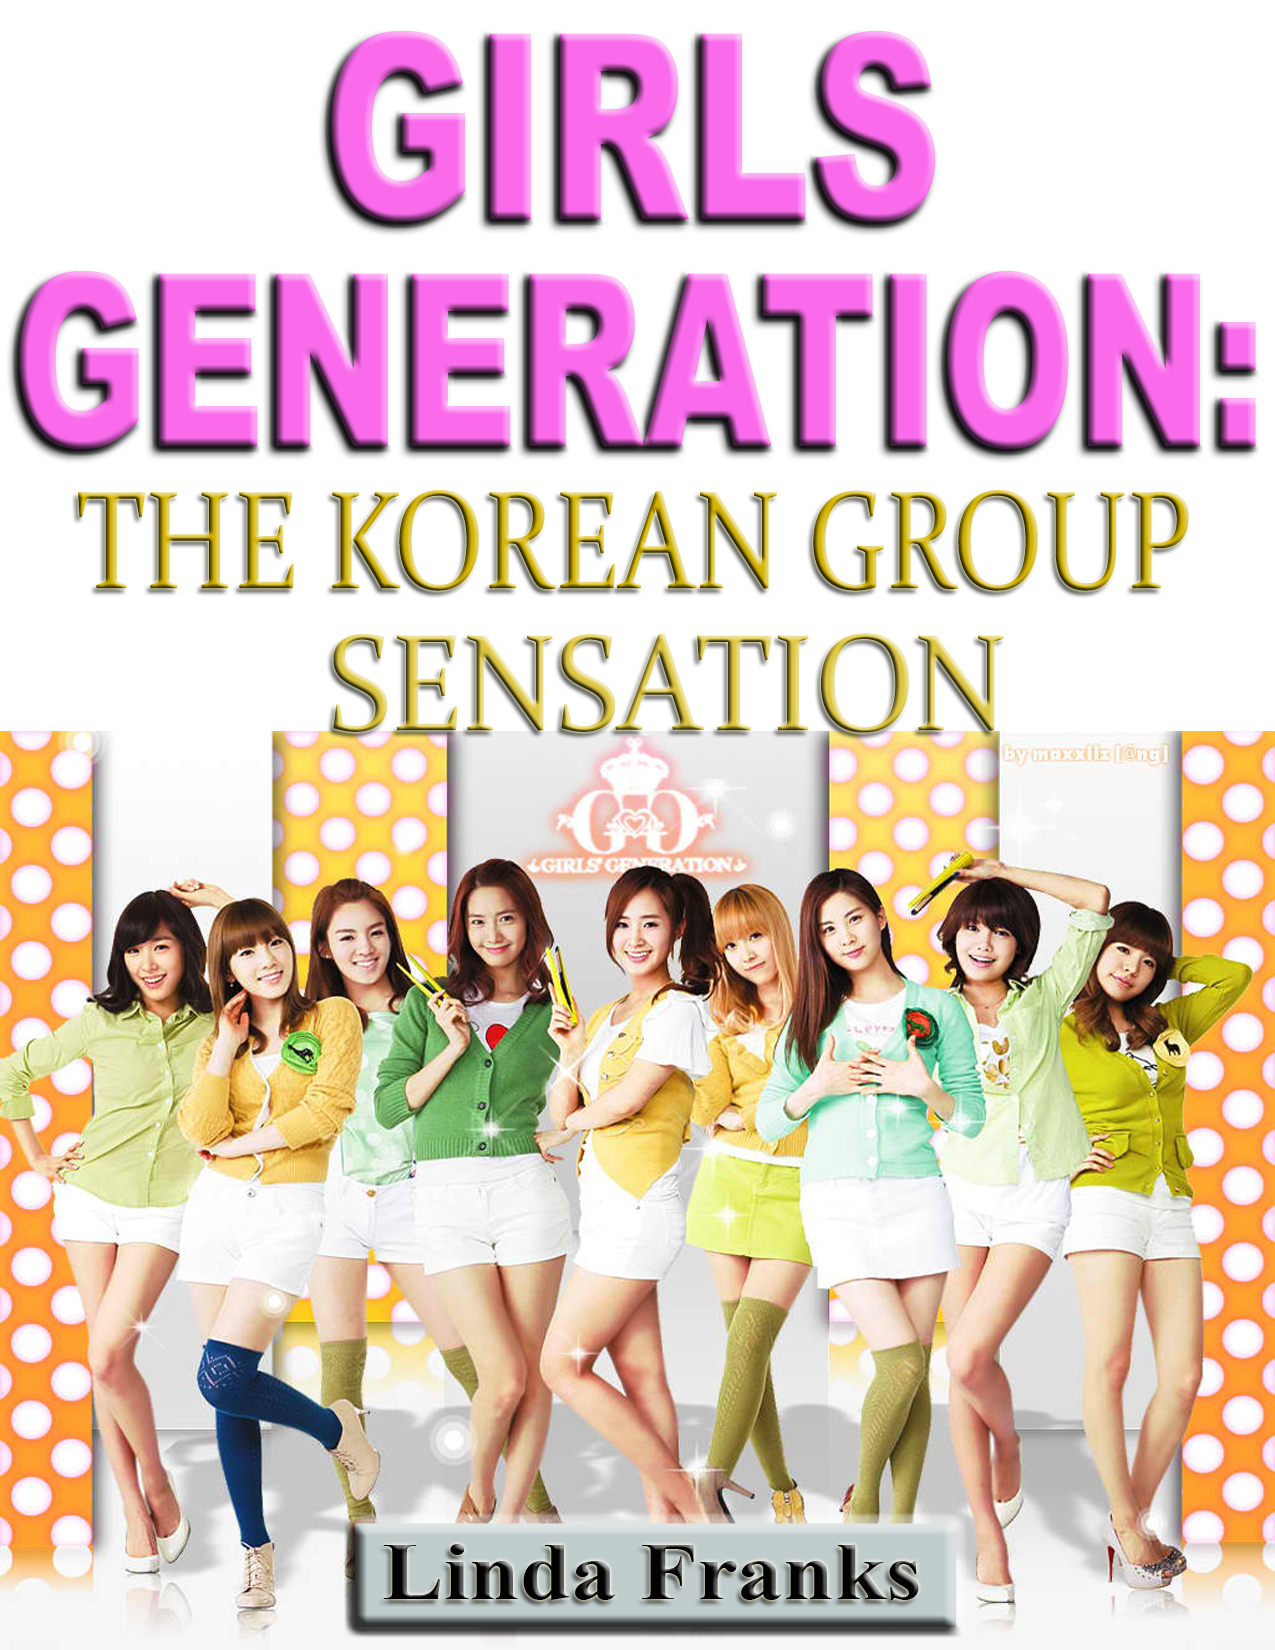 Linda Franks - Girls Generation: The Korean Group Sensation